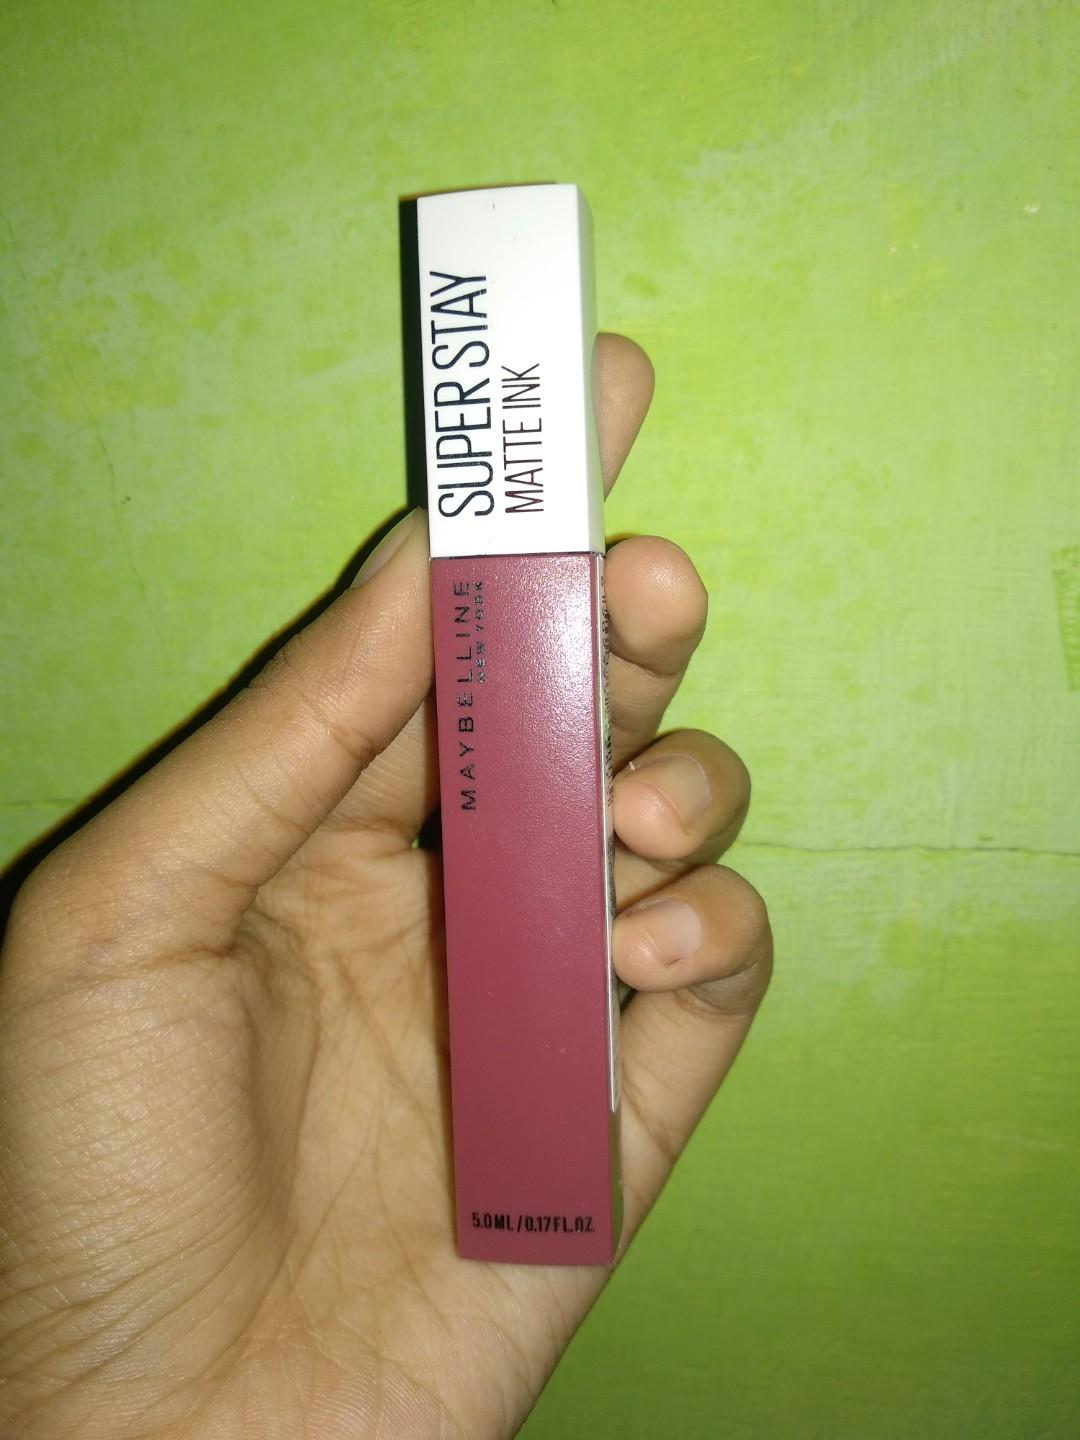 [REPRICE] Maybelline Super Stay Matte Ink